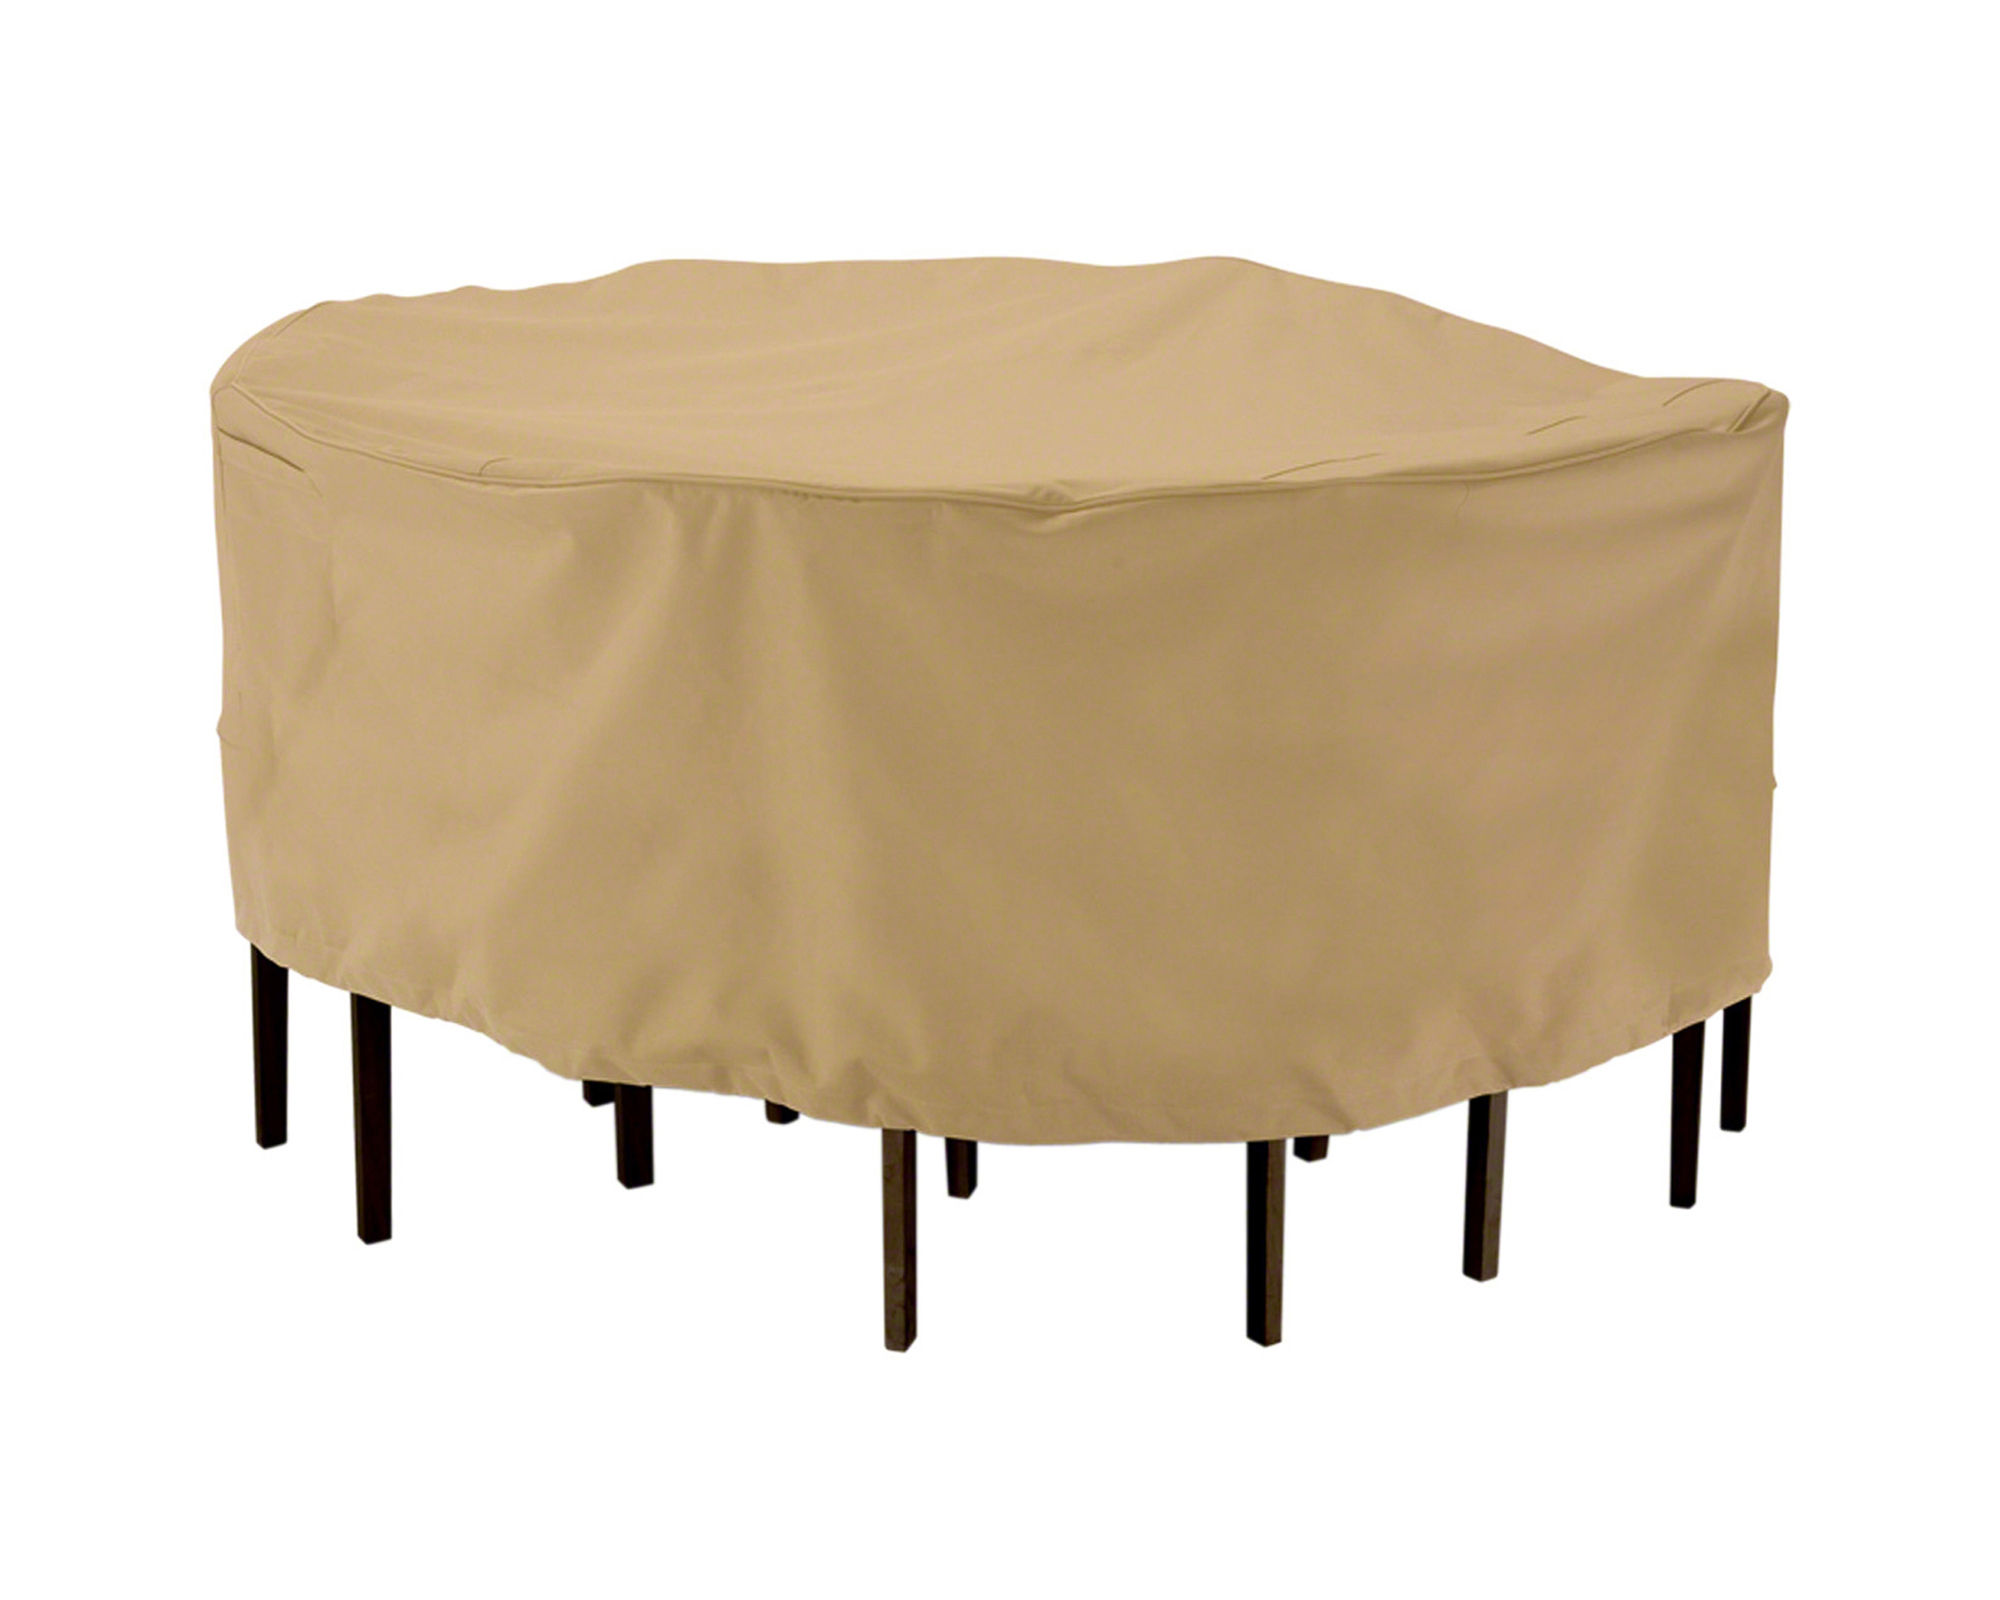 Jcpenney Table And Chairs Search